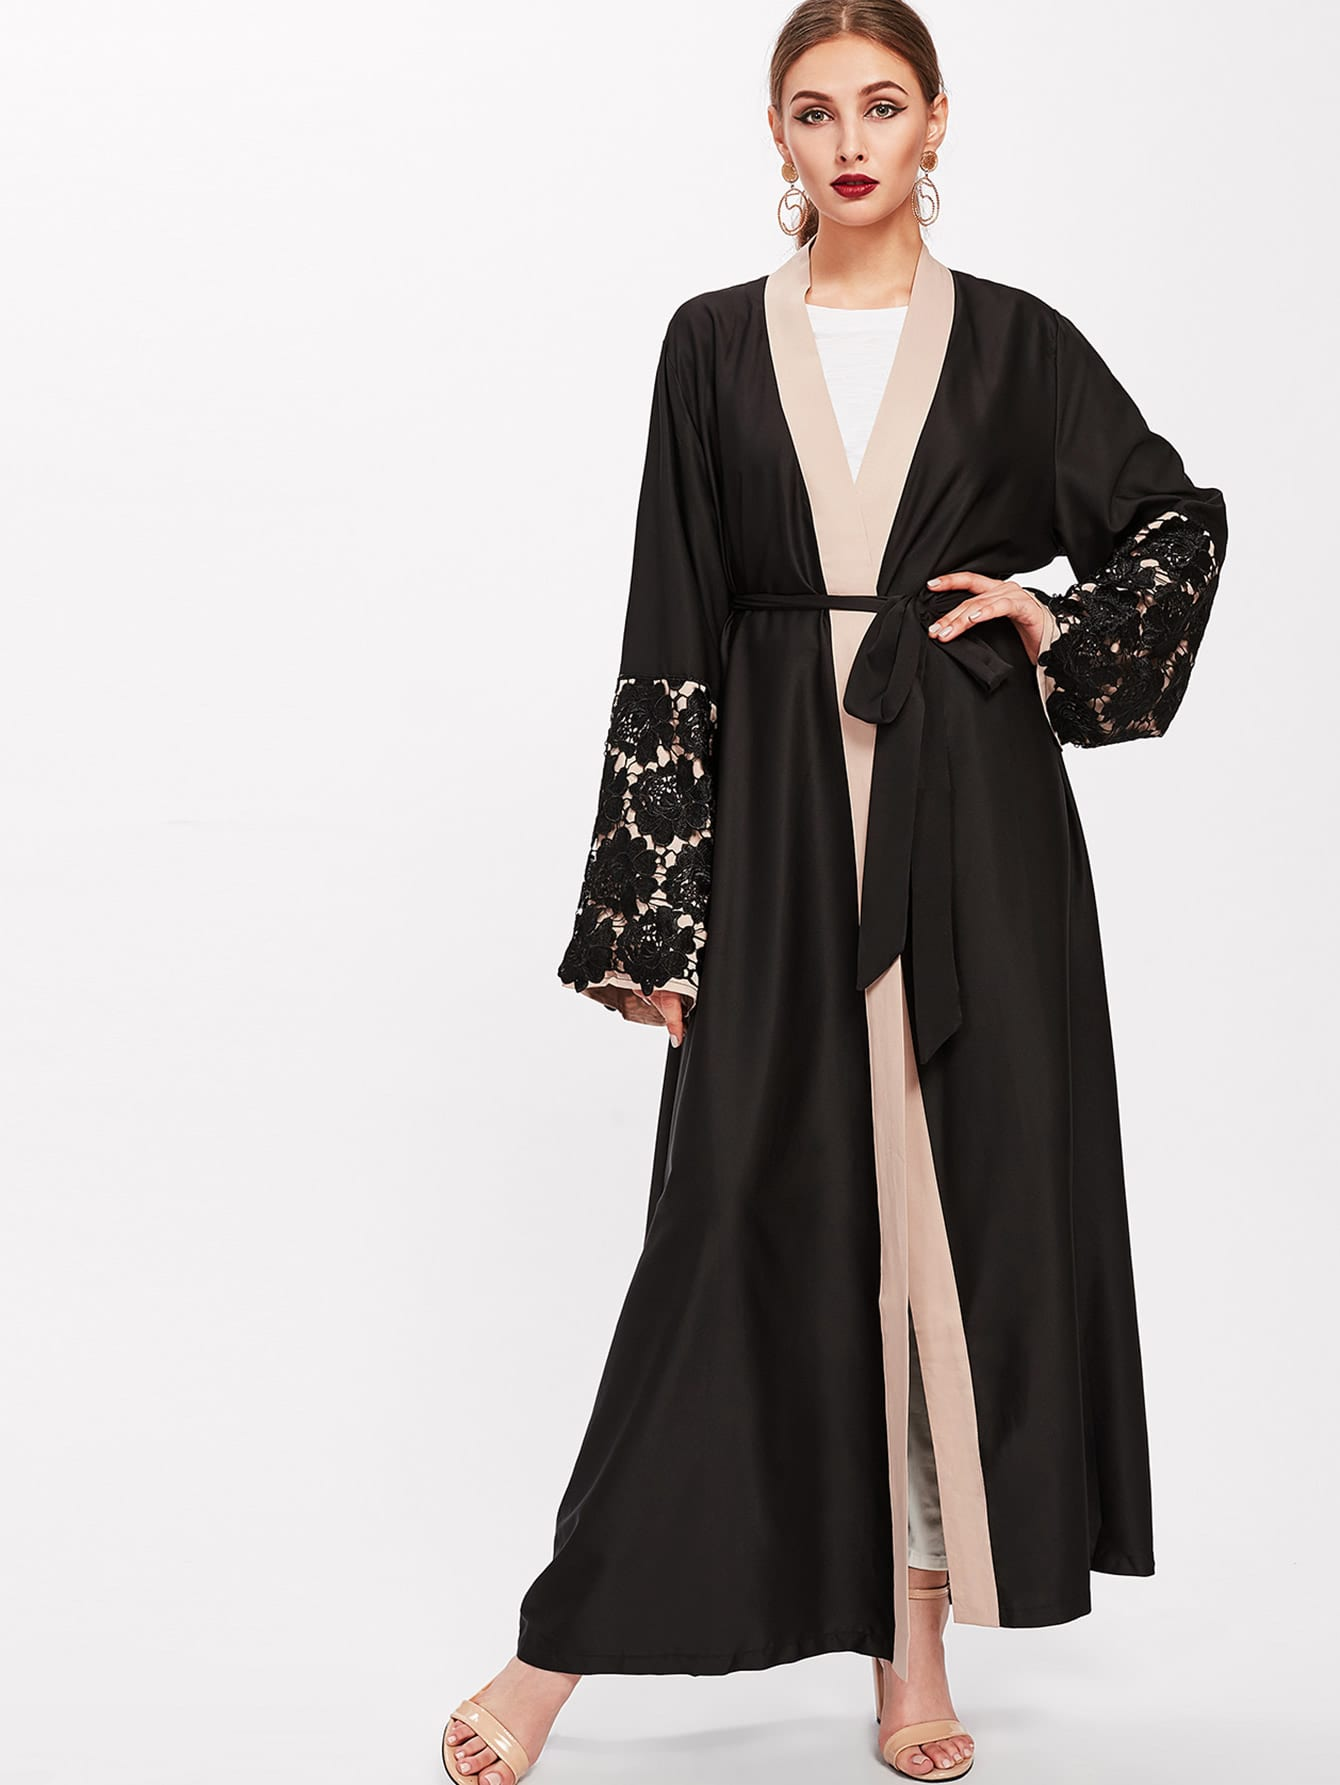 Contrast Floral Lace Detail Sleeve Self Tie Abaya black stitching floral lace self tie front long sleeves bodysuit